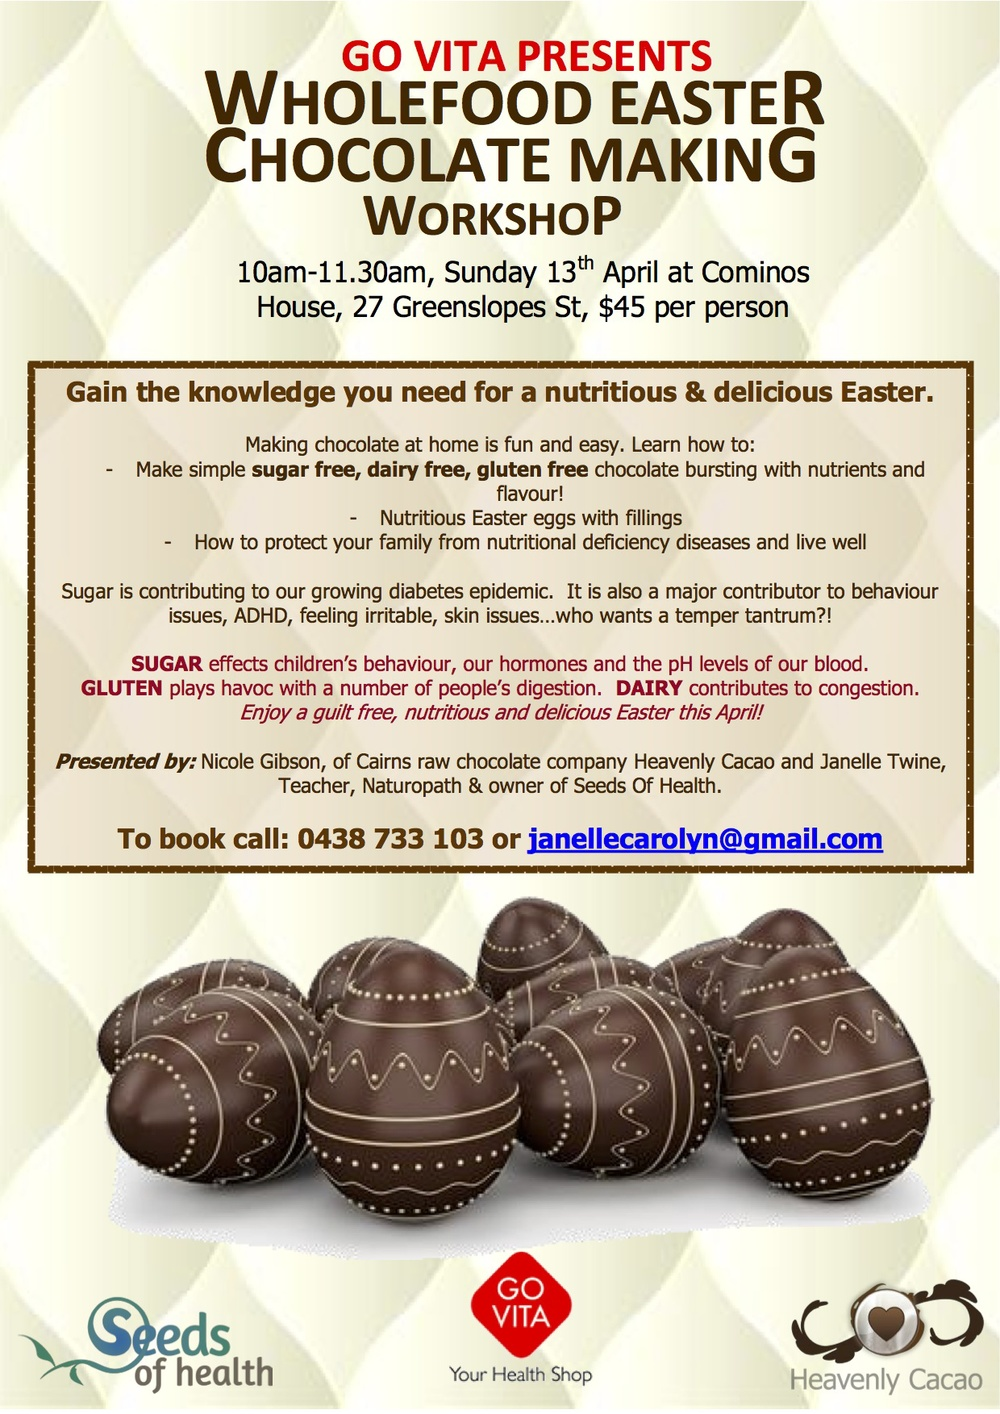 Wholefood Easter Chocolate Making workshop